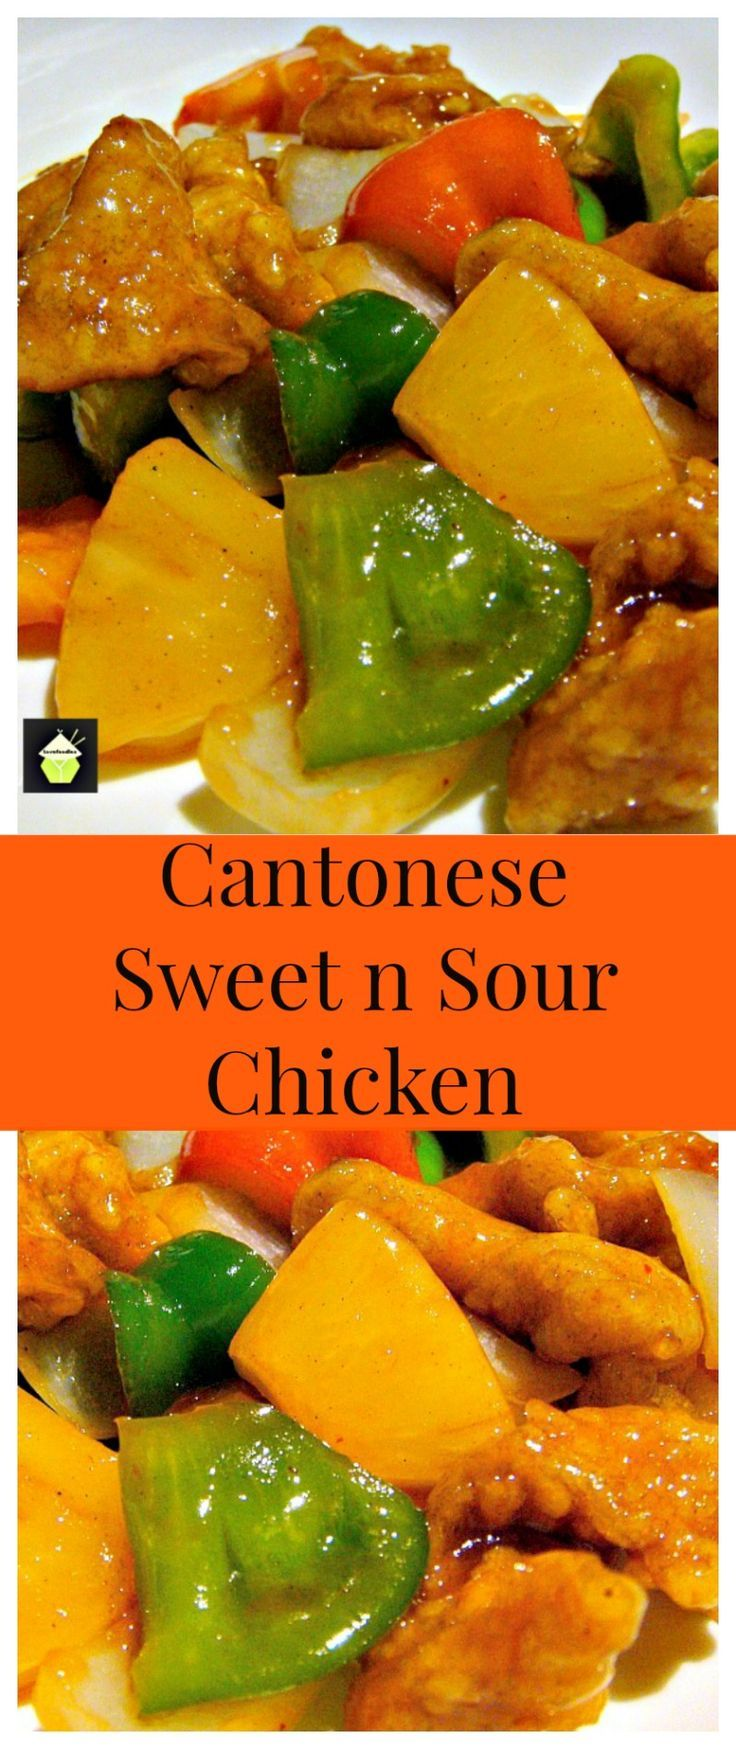 Authentic Cantonese Sweet and Sour Chicken - Come and see how to make it just like in the restaurants! Chinese food at it's best!